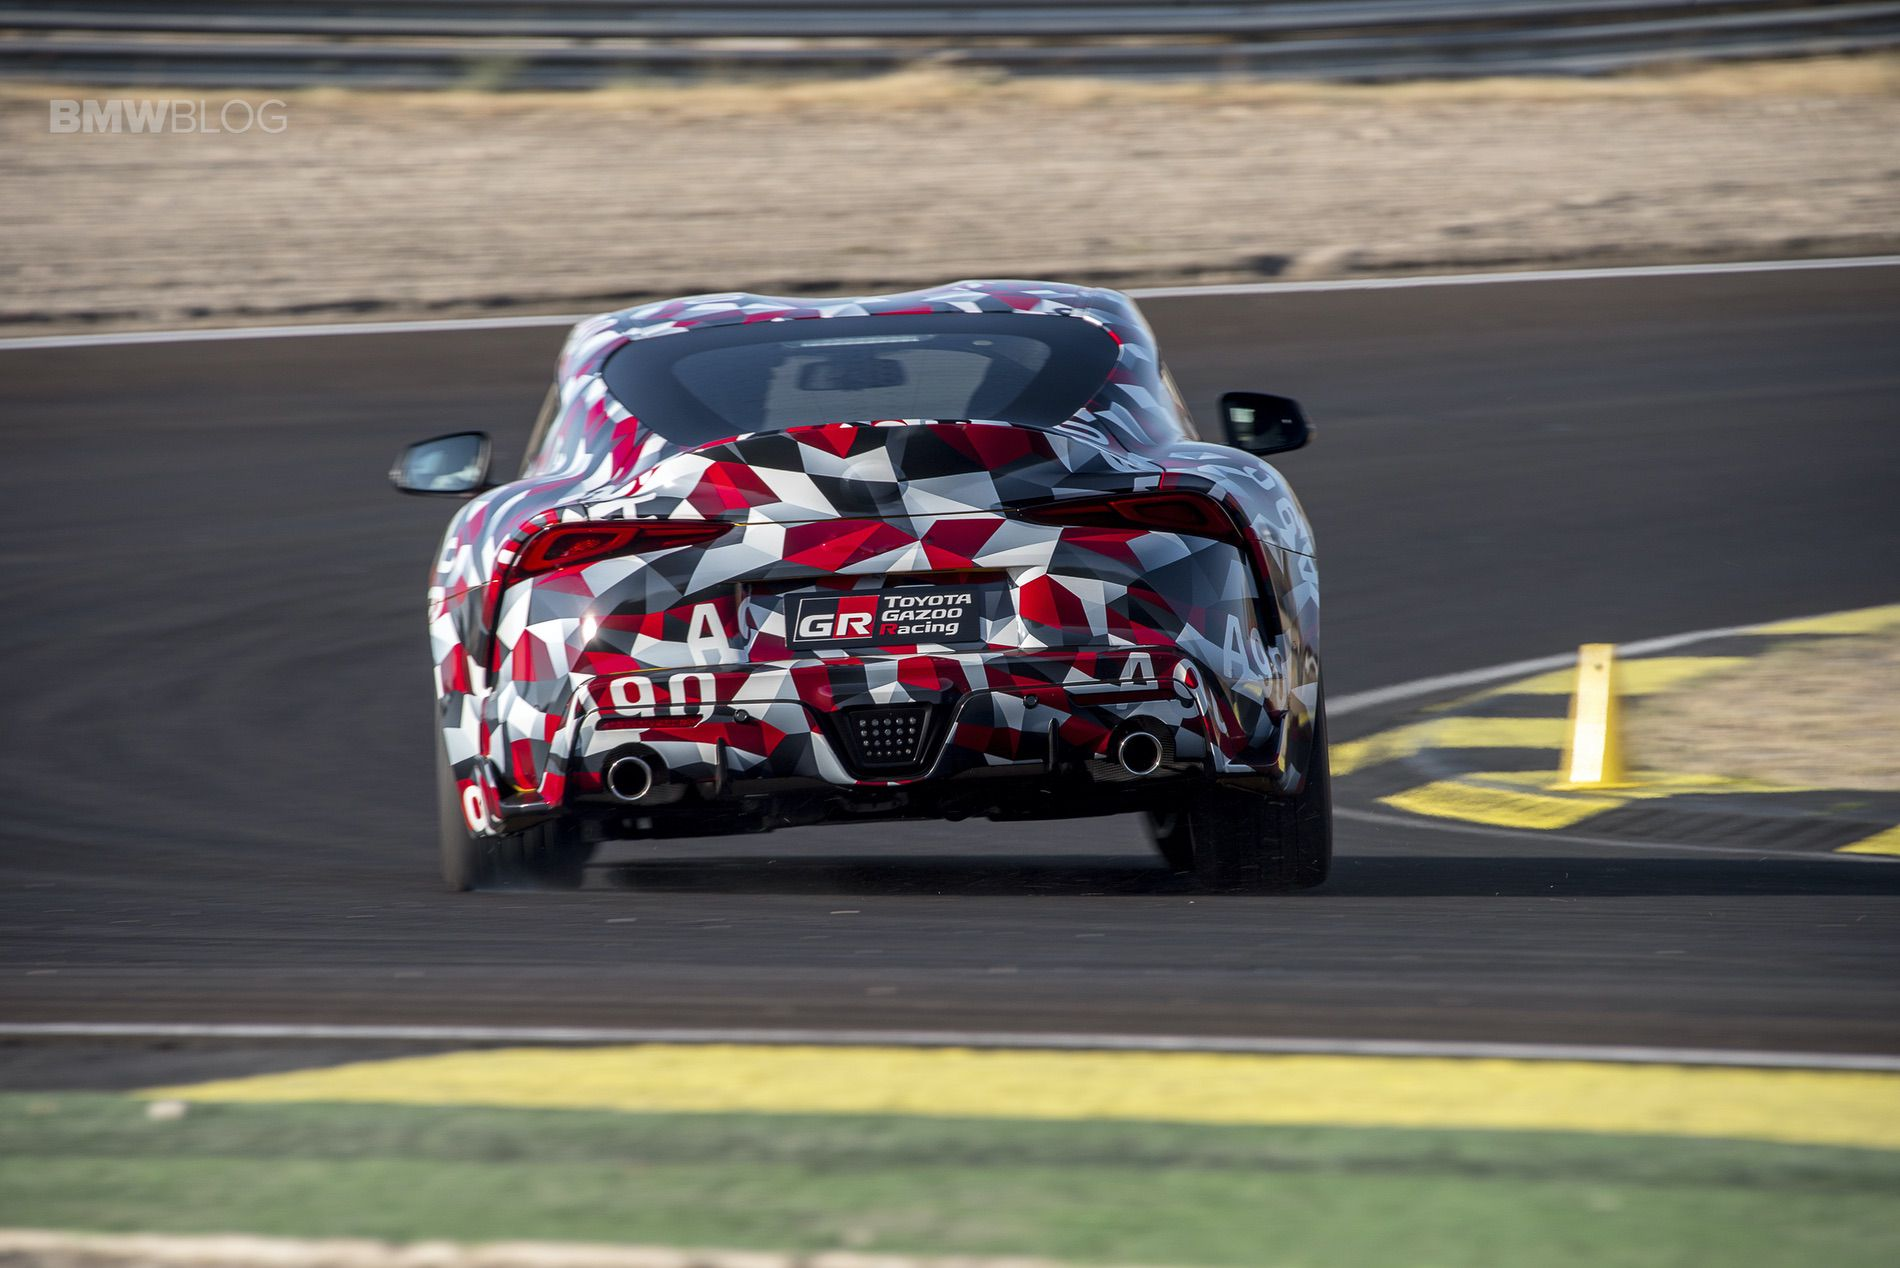 Test Drive Toyota Supra A90 Prototype Circuit From Here And So Far I Have Prototyped Most Of A After Arriving At The Jarama Quick Brief Explains Key Points Car Confirms That Prototypes We Are Going To